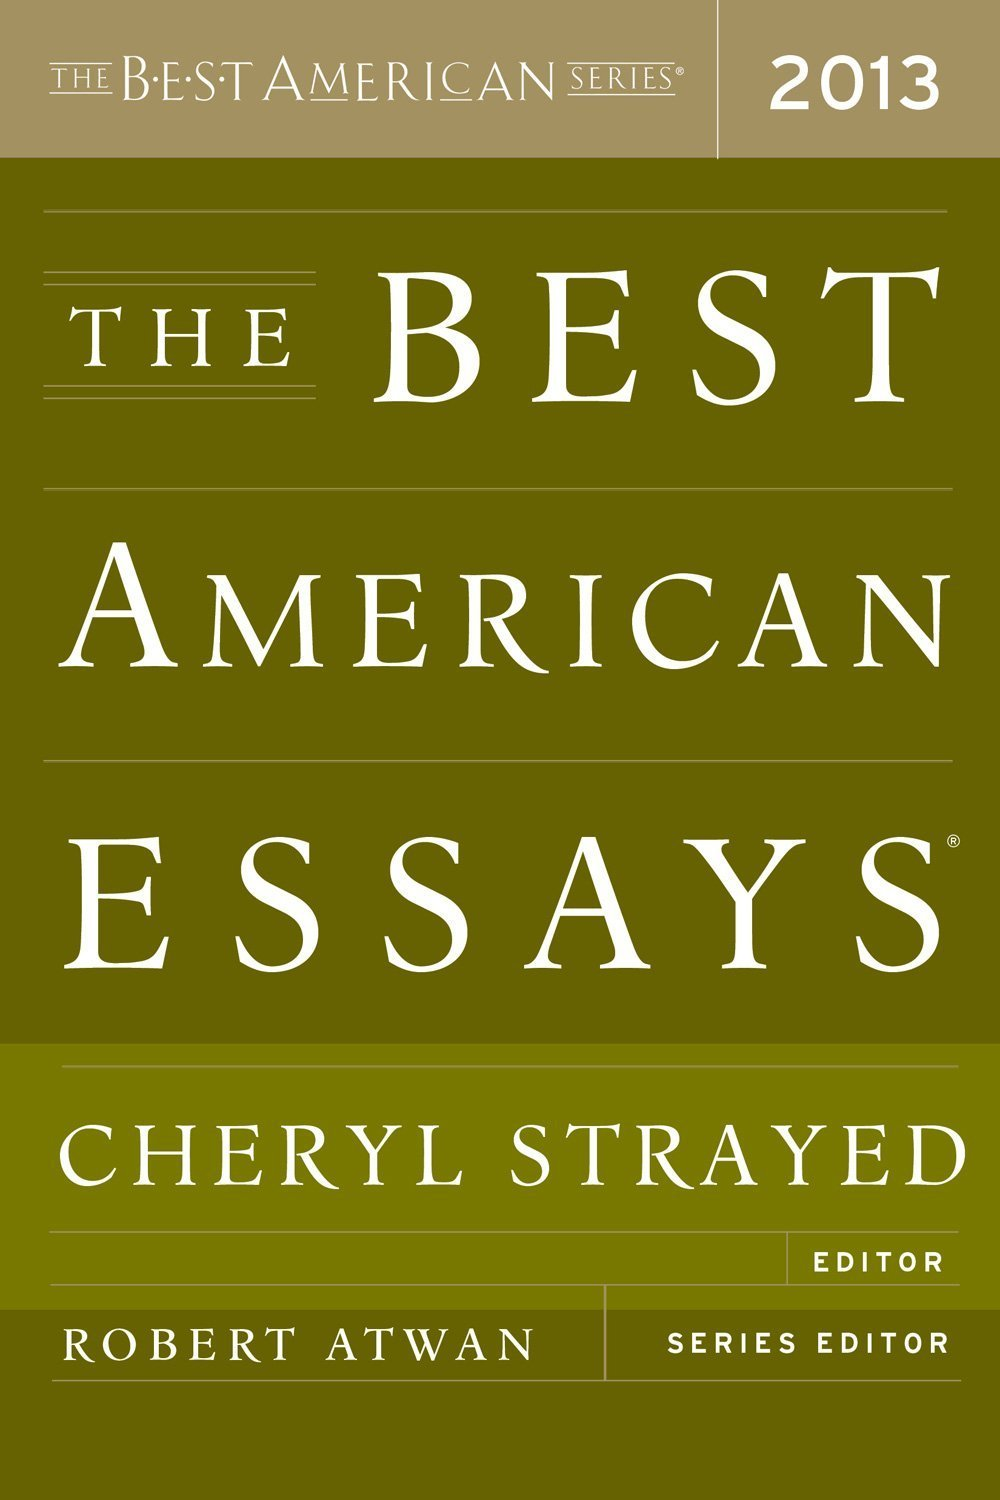 004 The Best American Essays Essay Wonderful 2013 Pdf Download Of Century Sparknotes 2017 Full